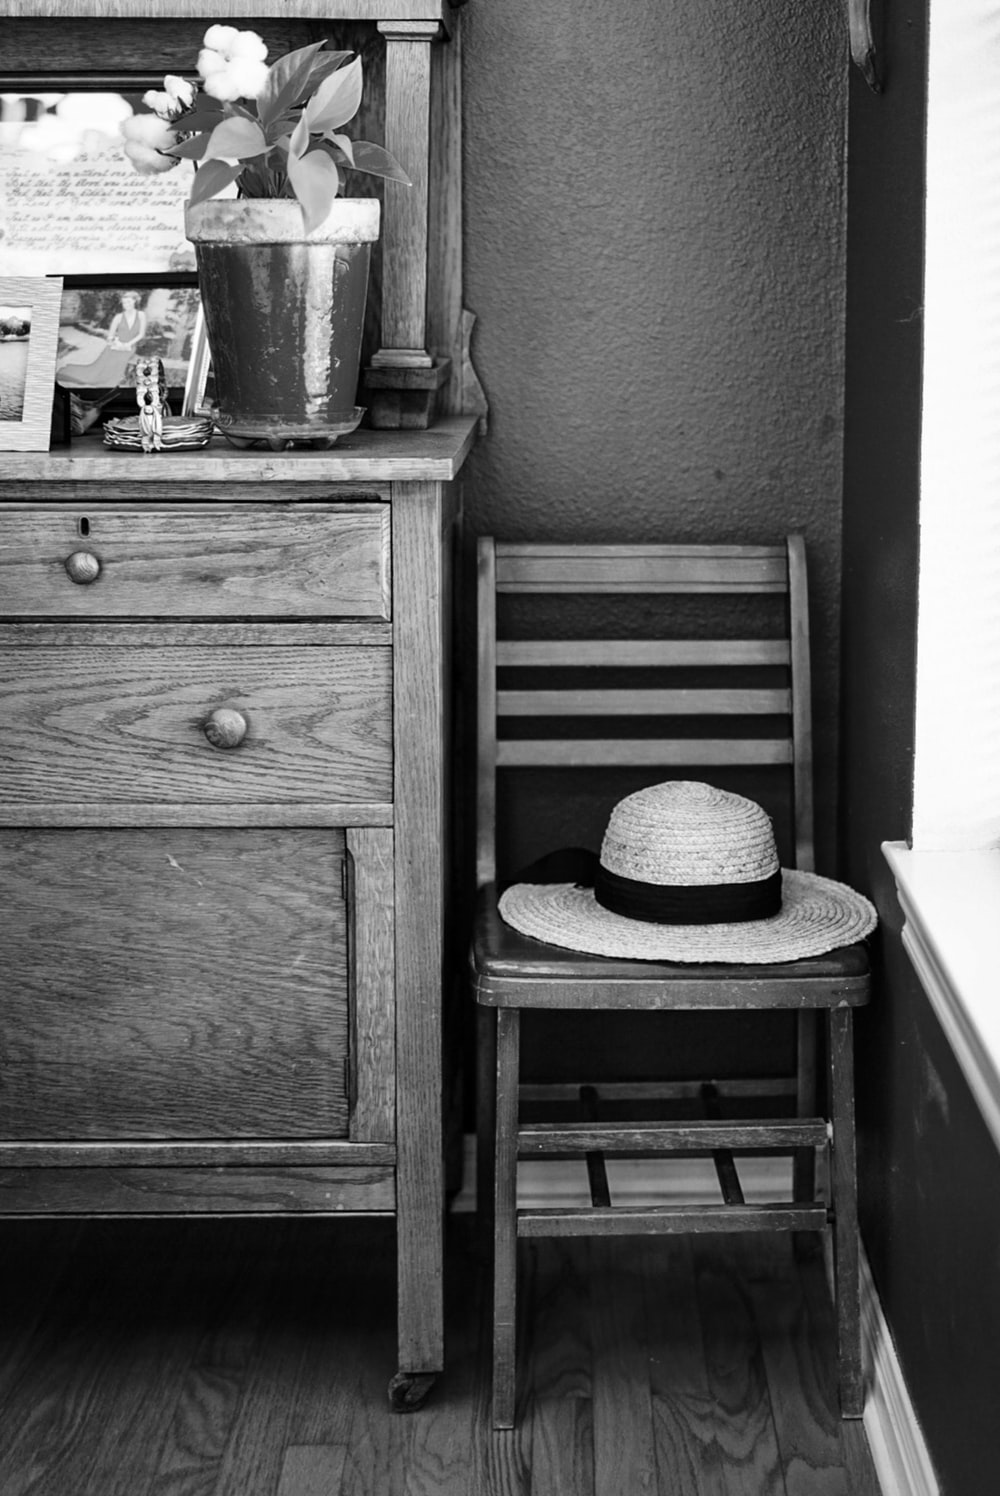 grayscale photo of hat on chair